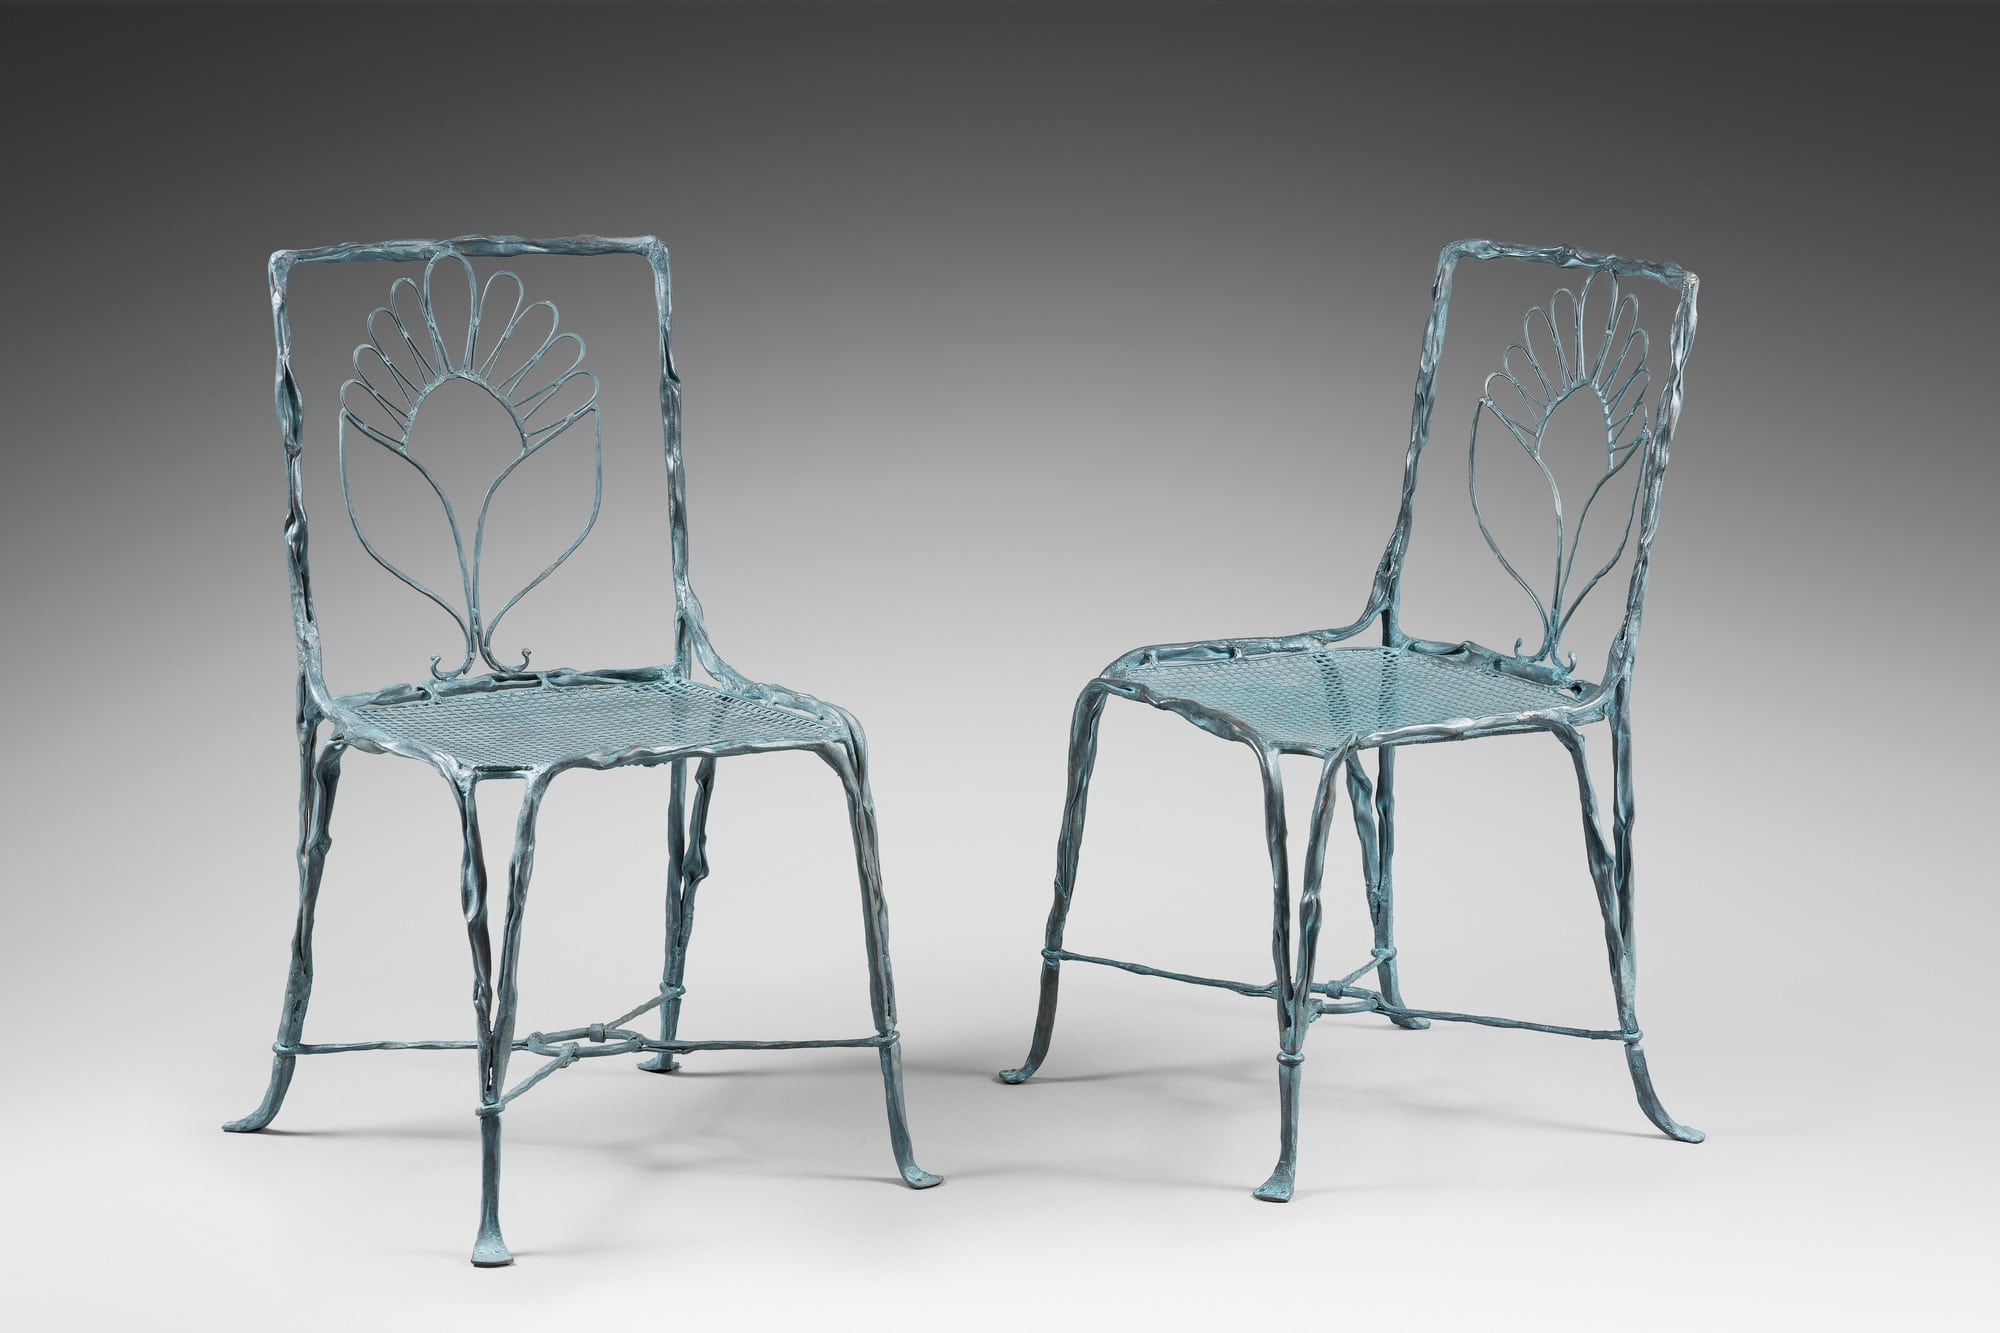 Set of four organic chairs, vue 01